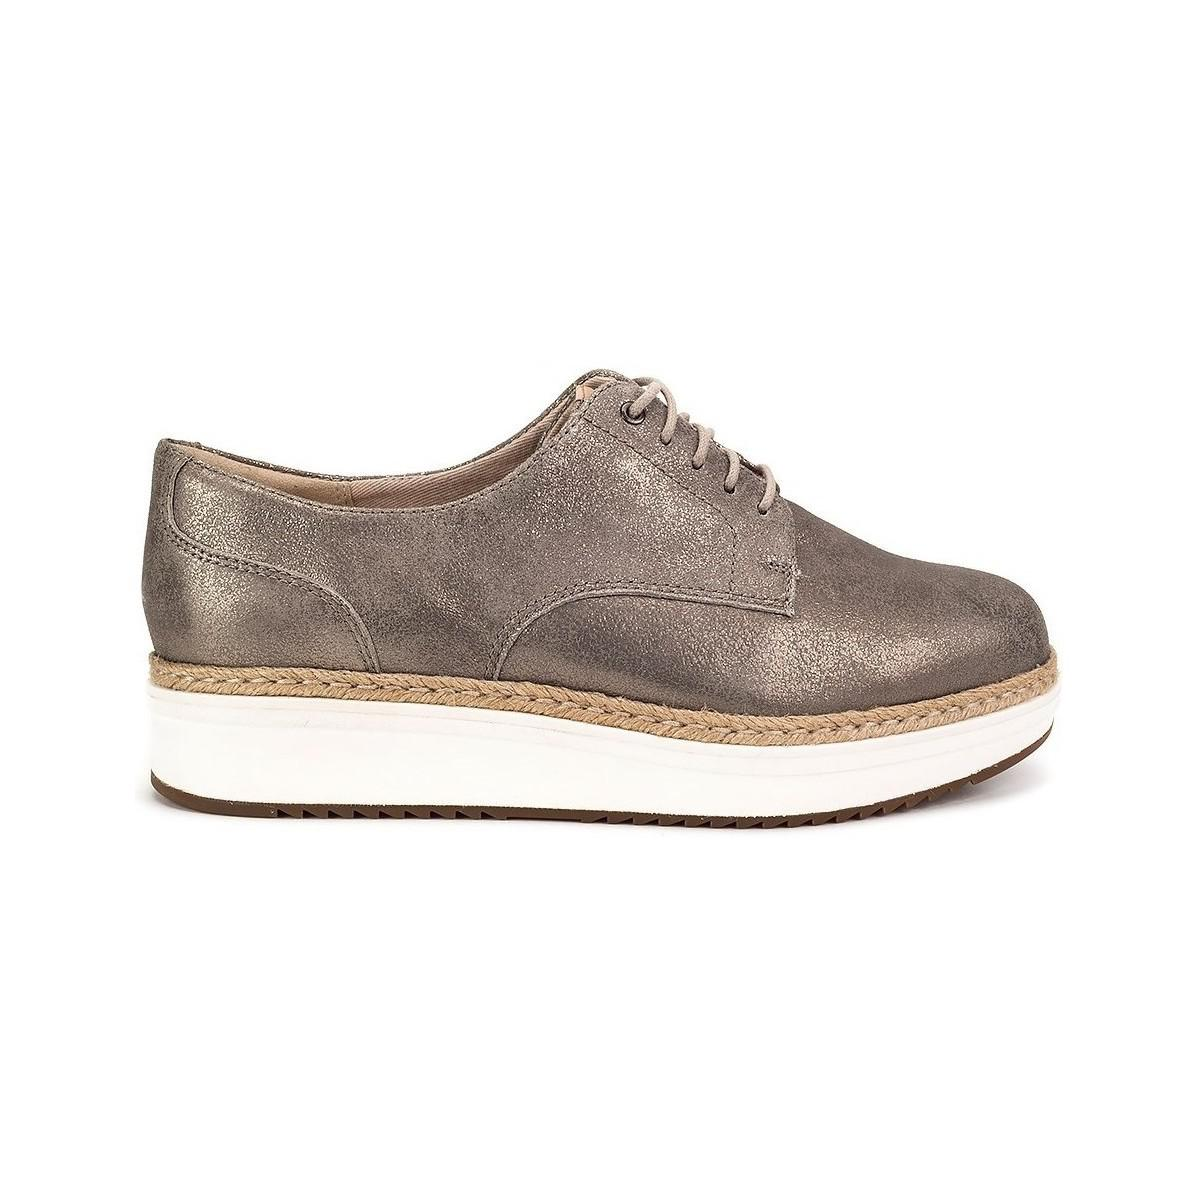 Cheap New Arrival How Much Clarks Teadale Rhea women's Shoes (Trainers) in Cheap And Nice Low Price Fee Shipping For Sale WzCBXzco